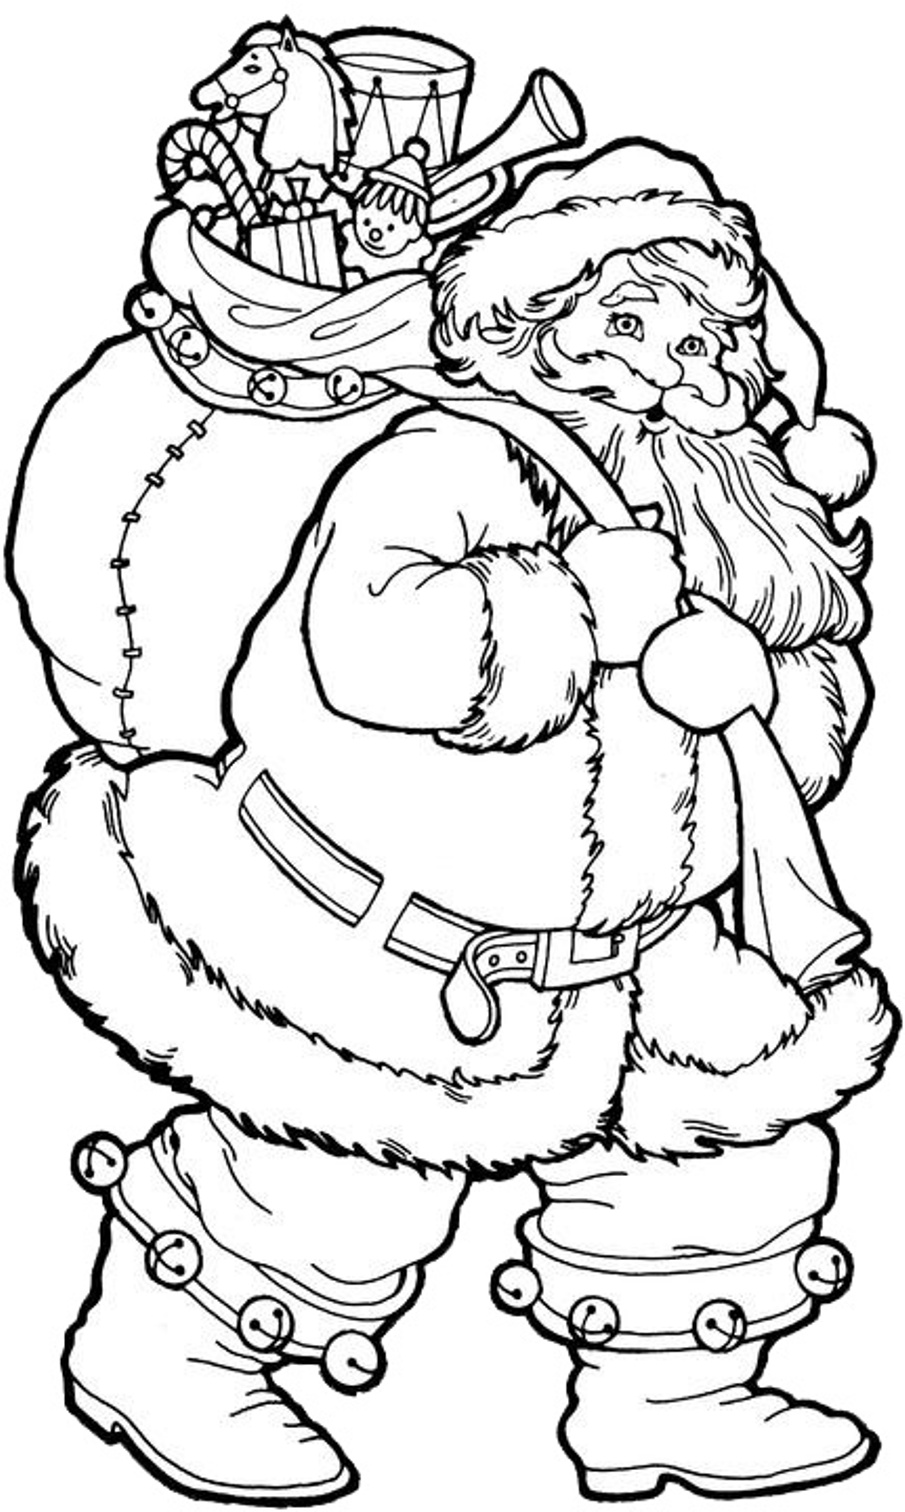 905x1512 Christmas Coloring Pages To Print Free Printable Kids Inside